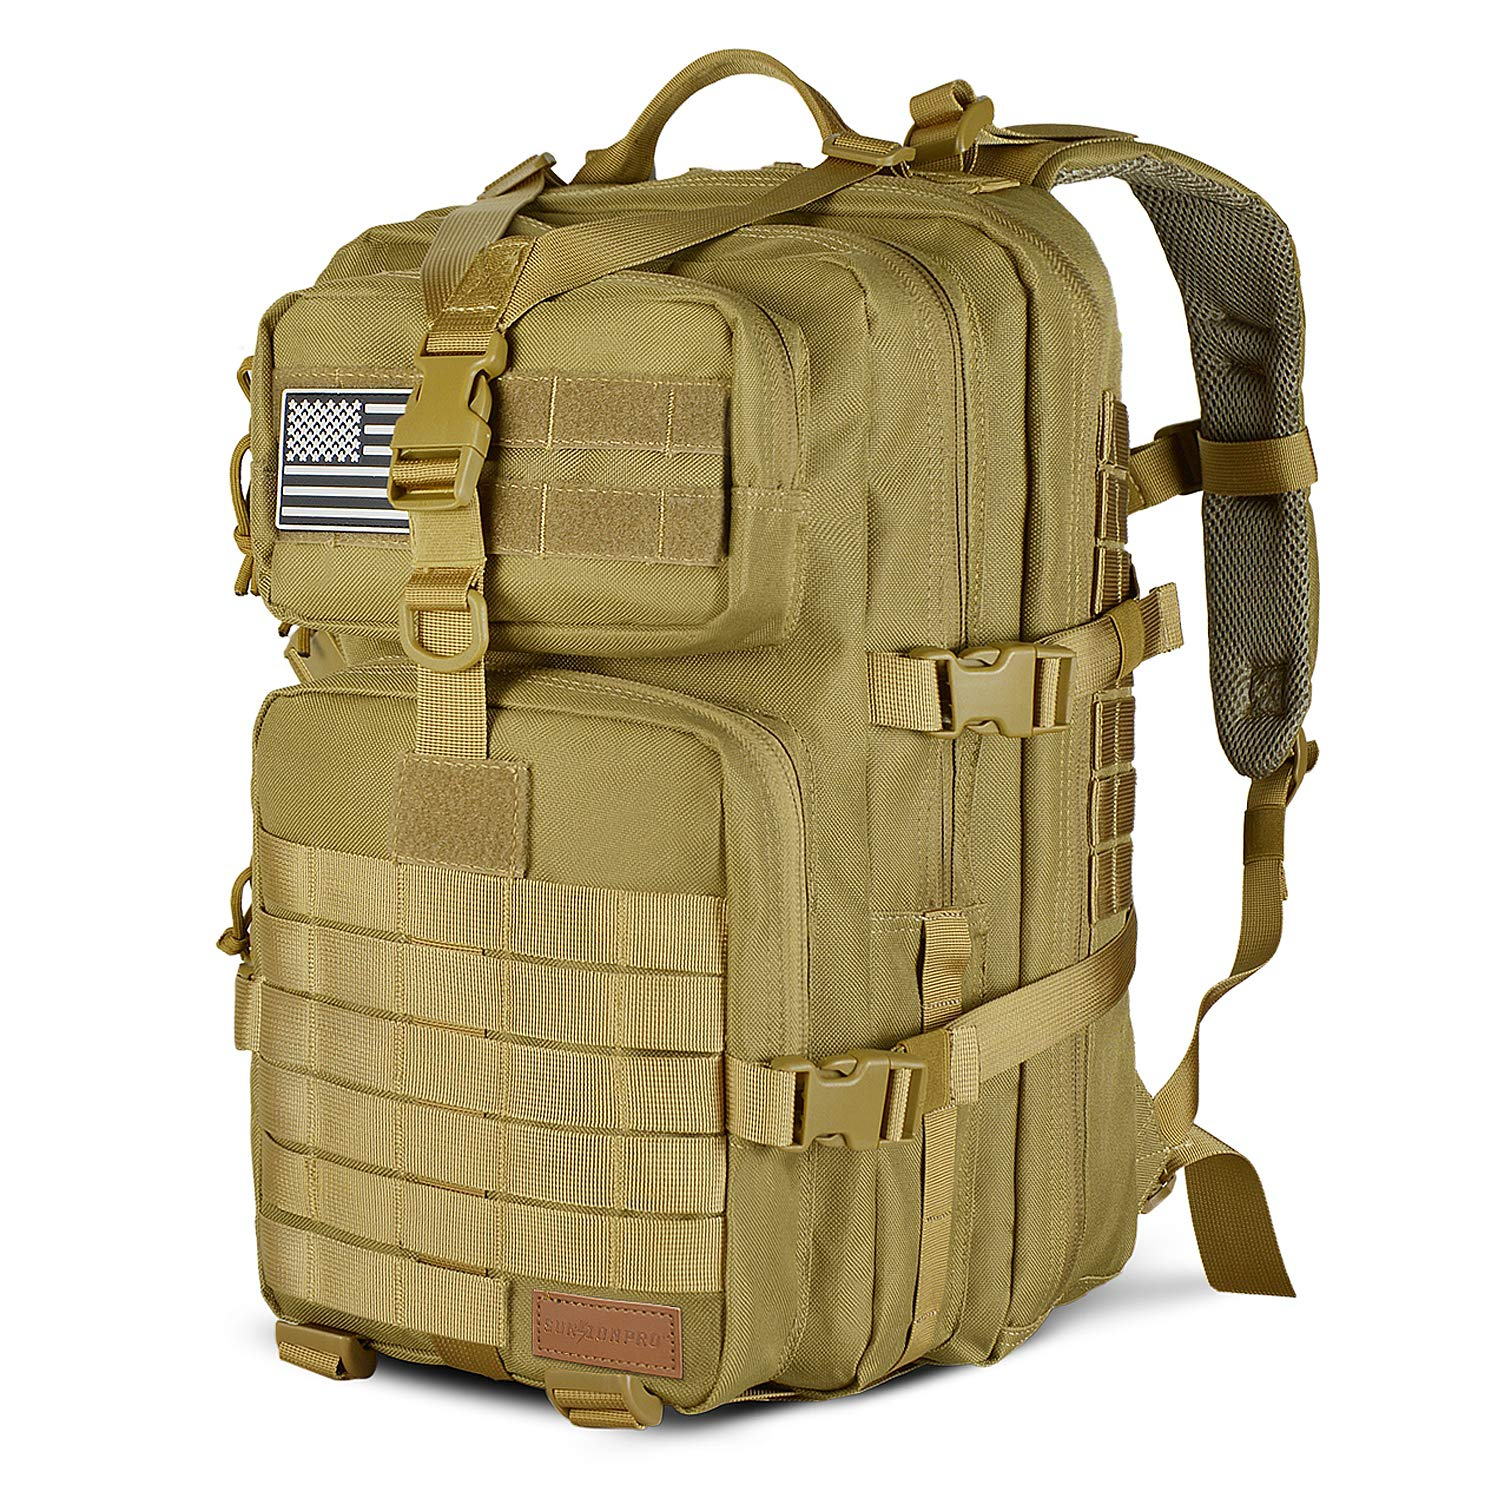 SunsionPro MTB-231 Military Tactical Backpack Large Army 3 Day Assault Pack Molle Bag Travel Rucksacks for Outdoor Hiking Camping Trekking Hunting, 43L (Coyote)